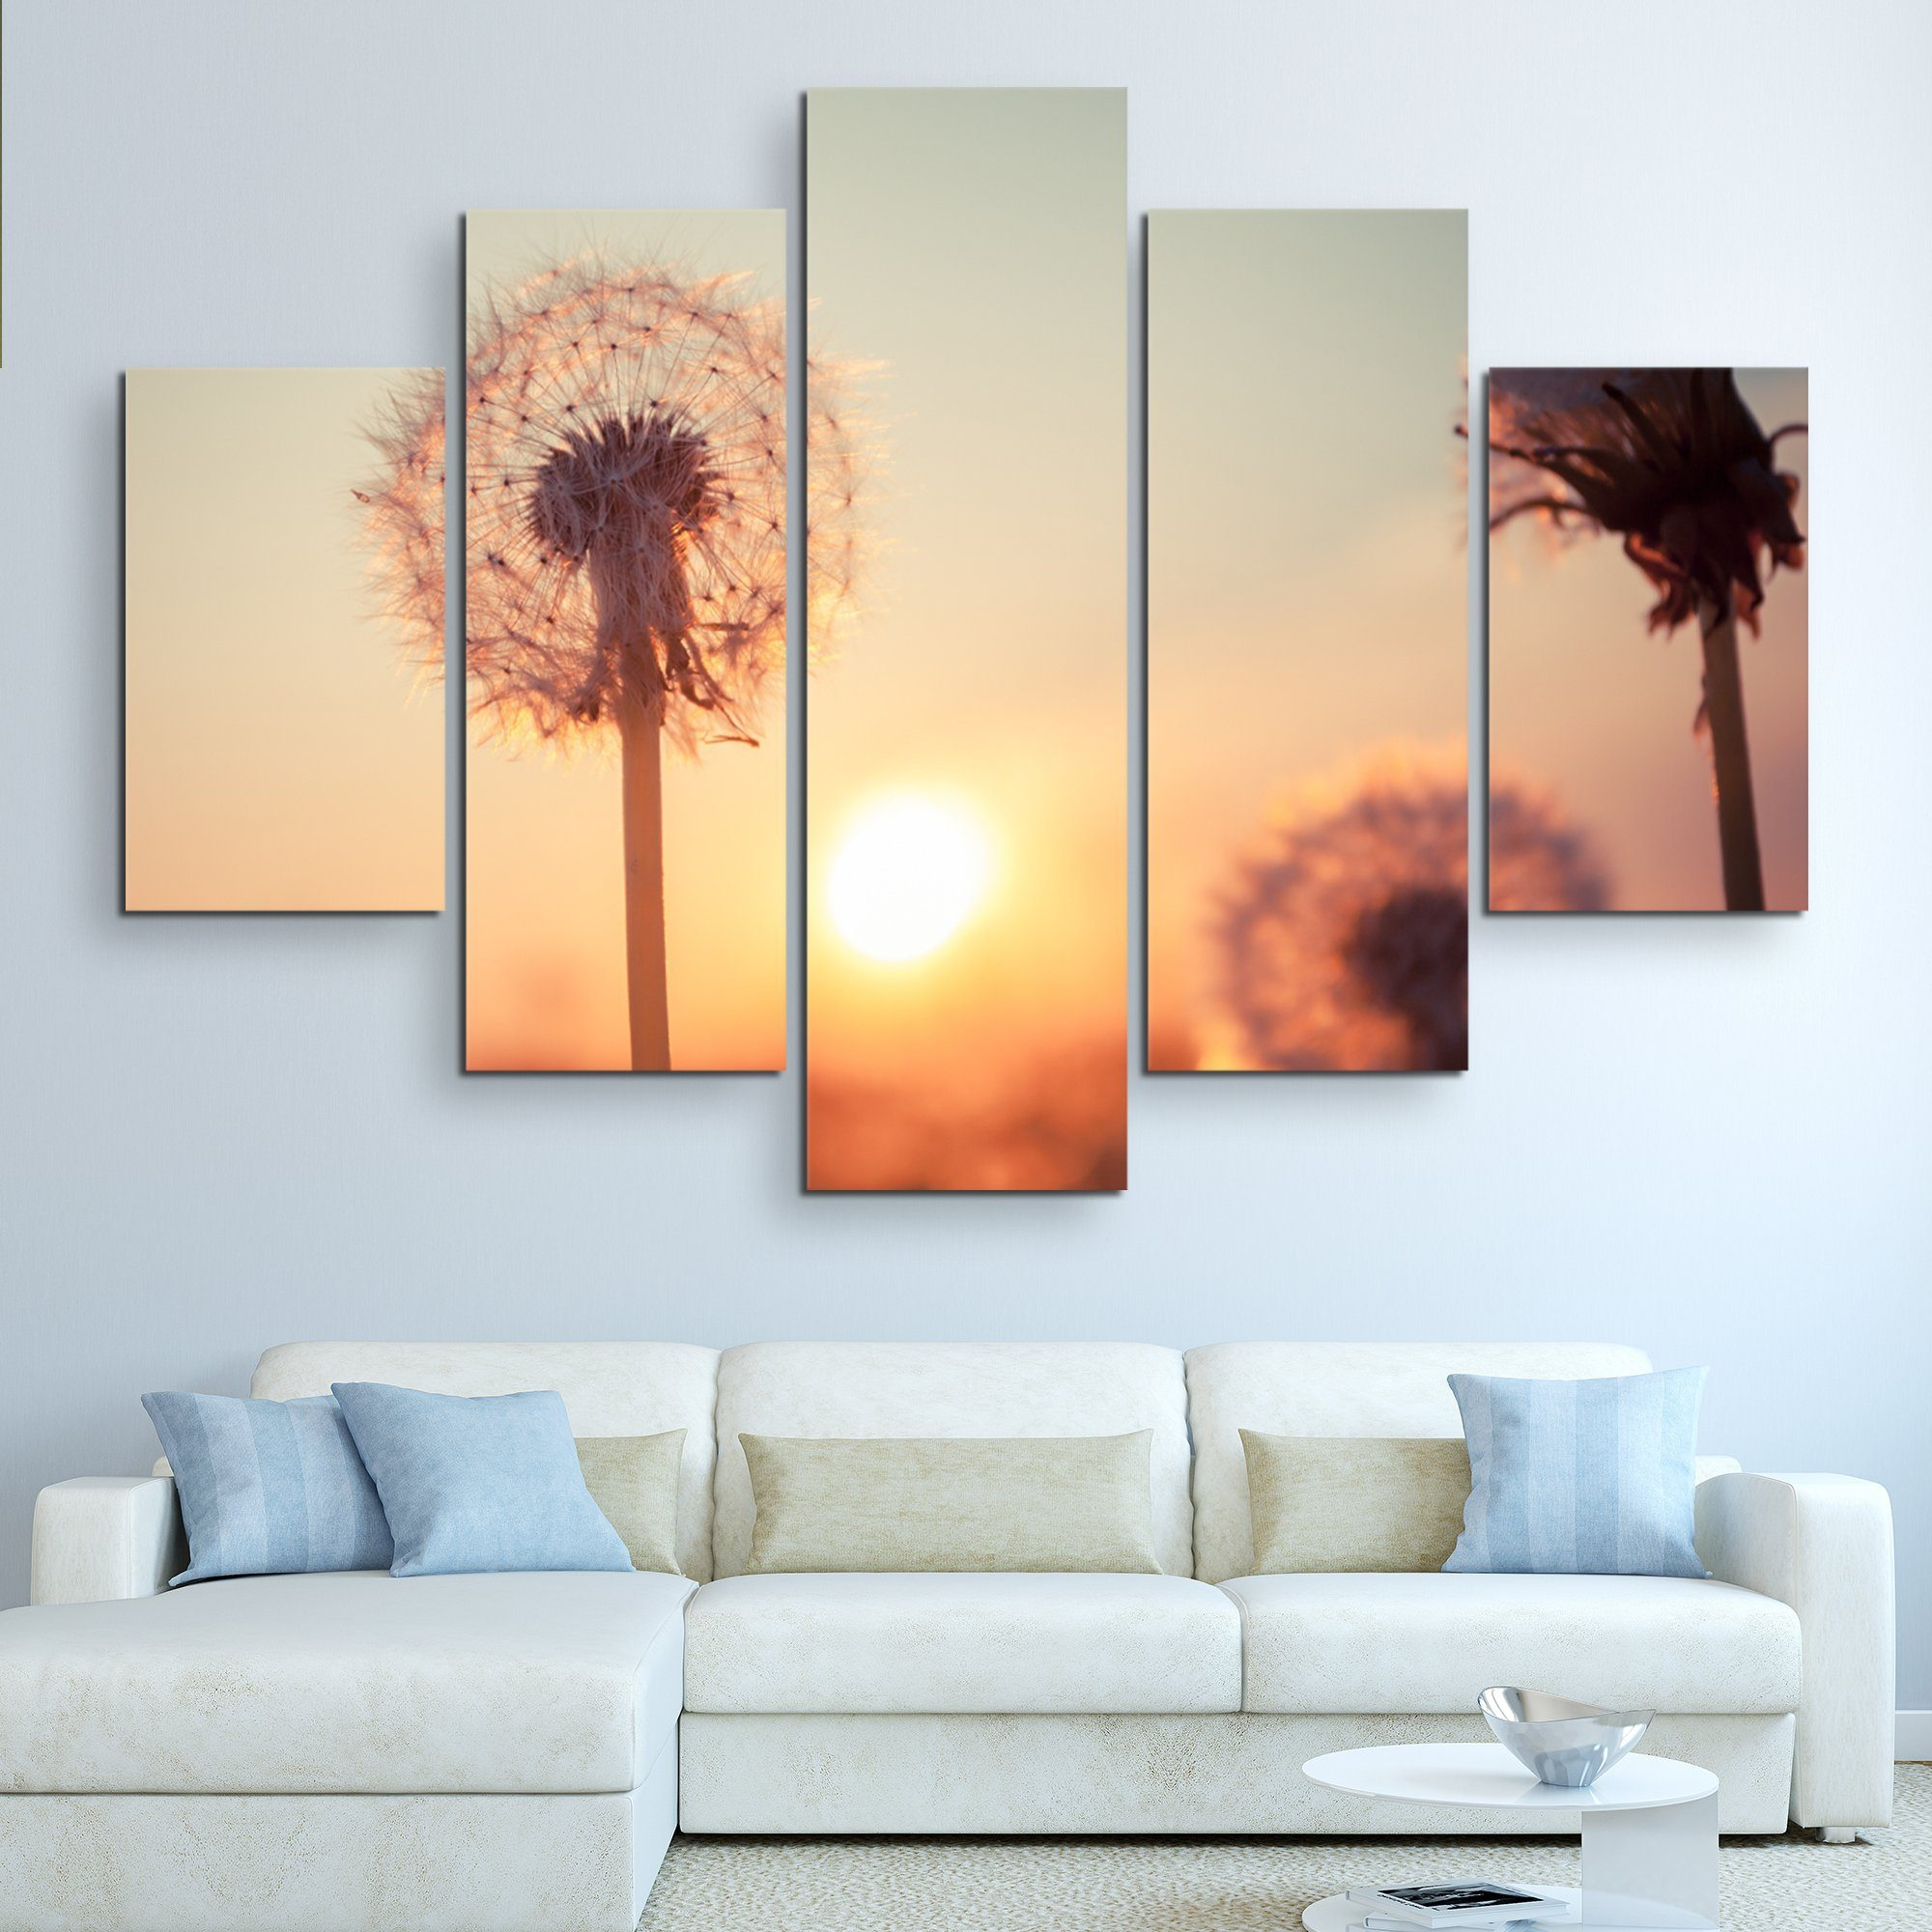 5 piece Dandelions at Sunset wall art